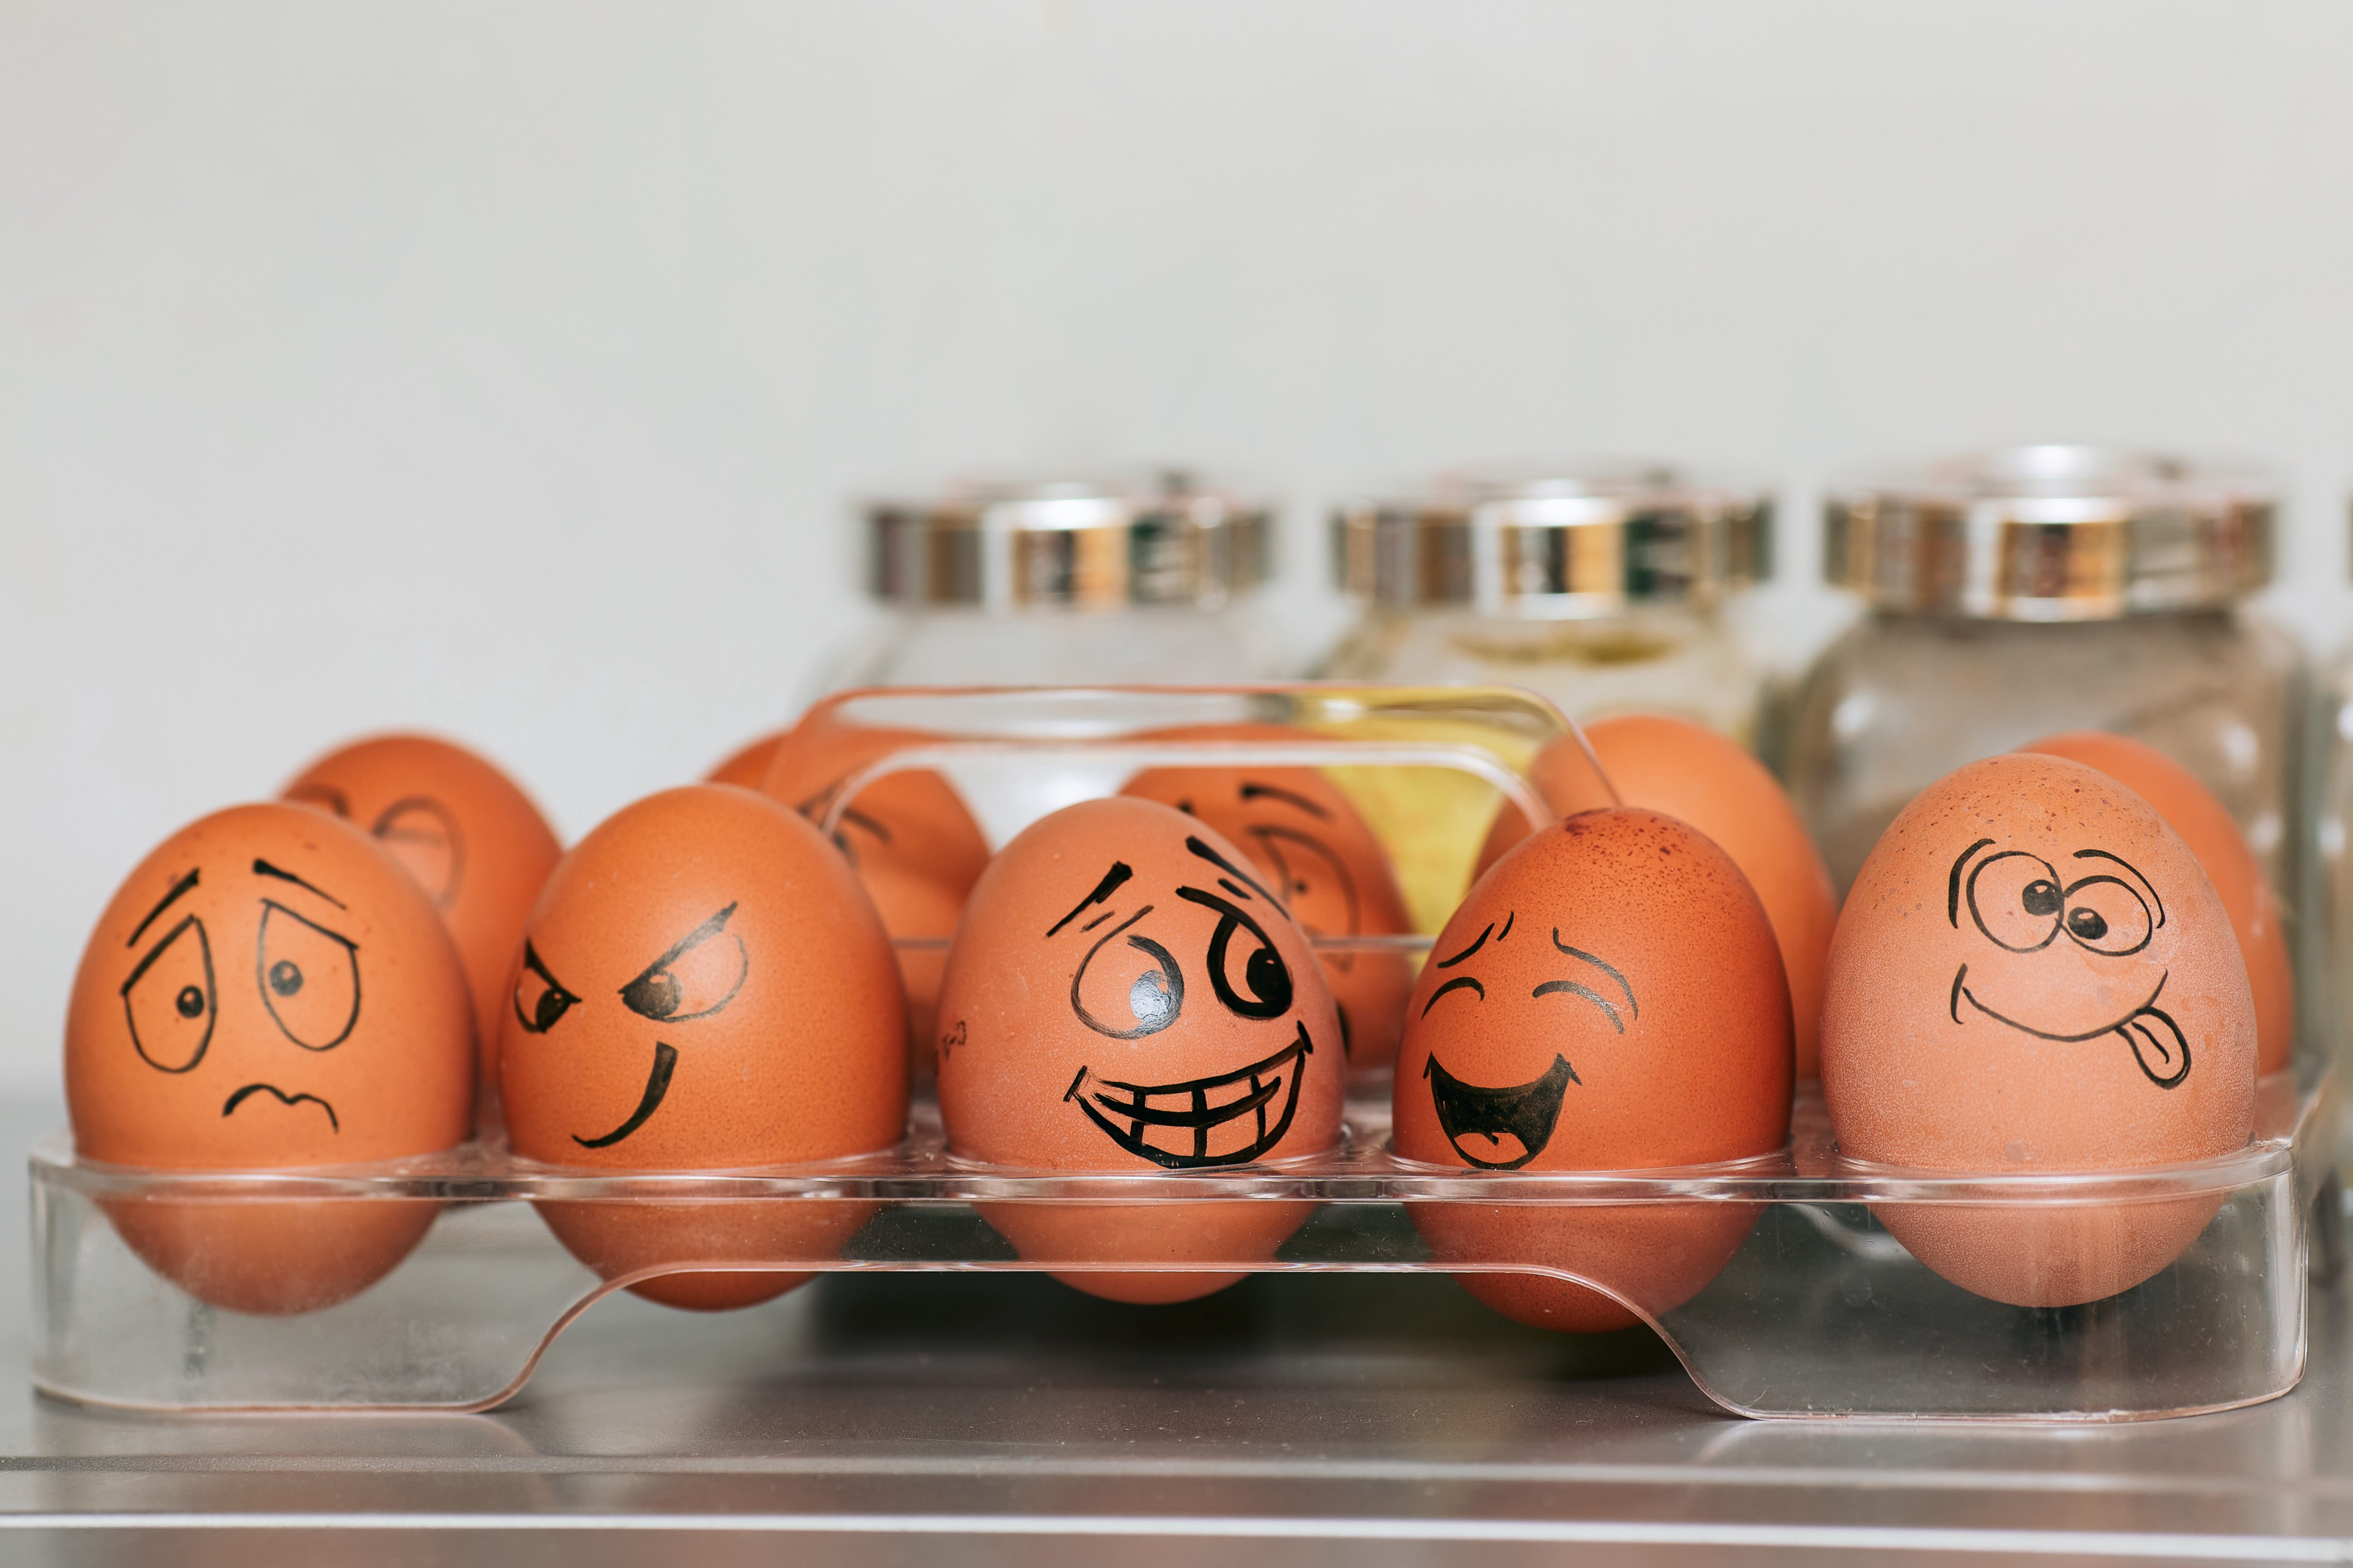 Brown eggs in a container with faces drawn onto them expressing emotions: sadness, confidence, mirth, silliness, etc.